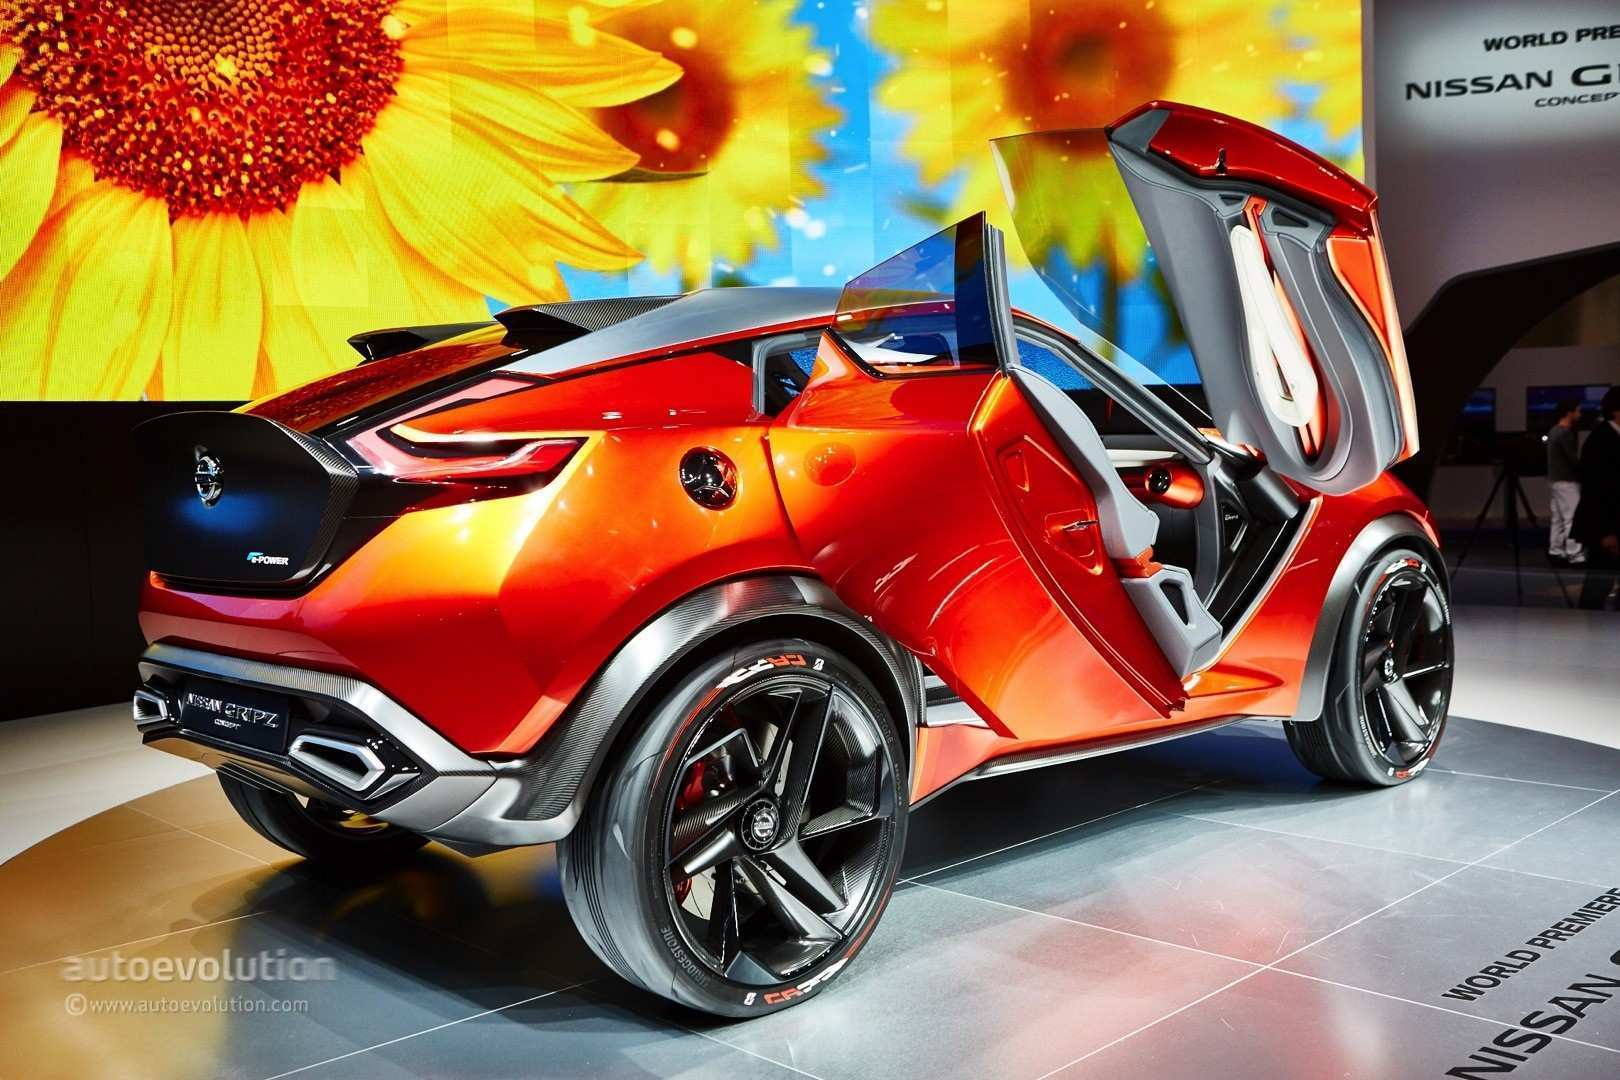 27 Concept of Nissan Juke 2020 New Concept Exterior and Interior for Nissan Juke 2020 New Concept